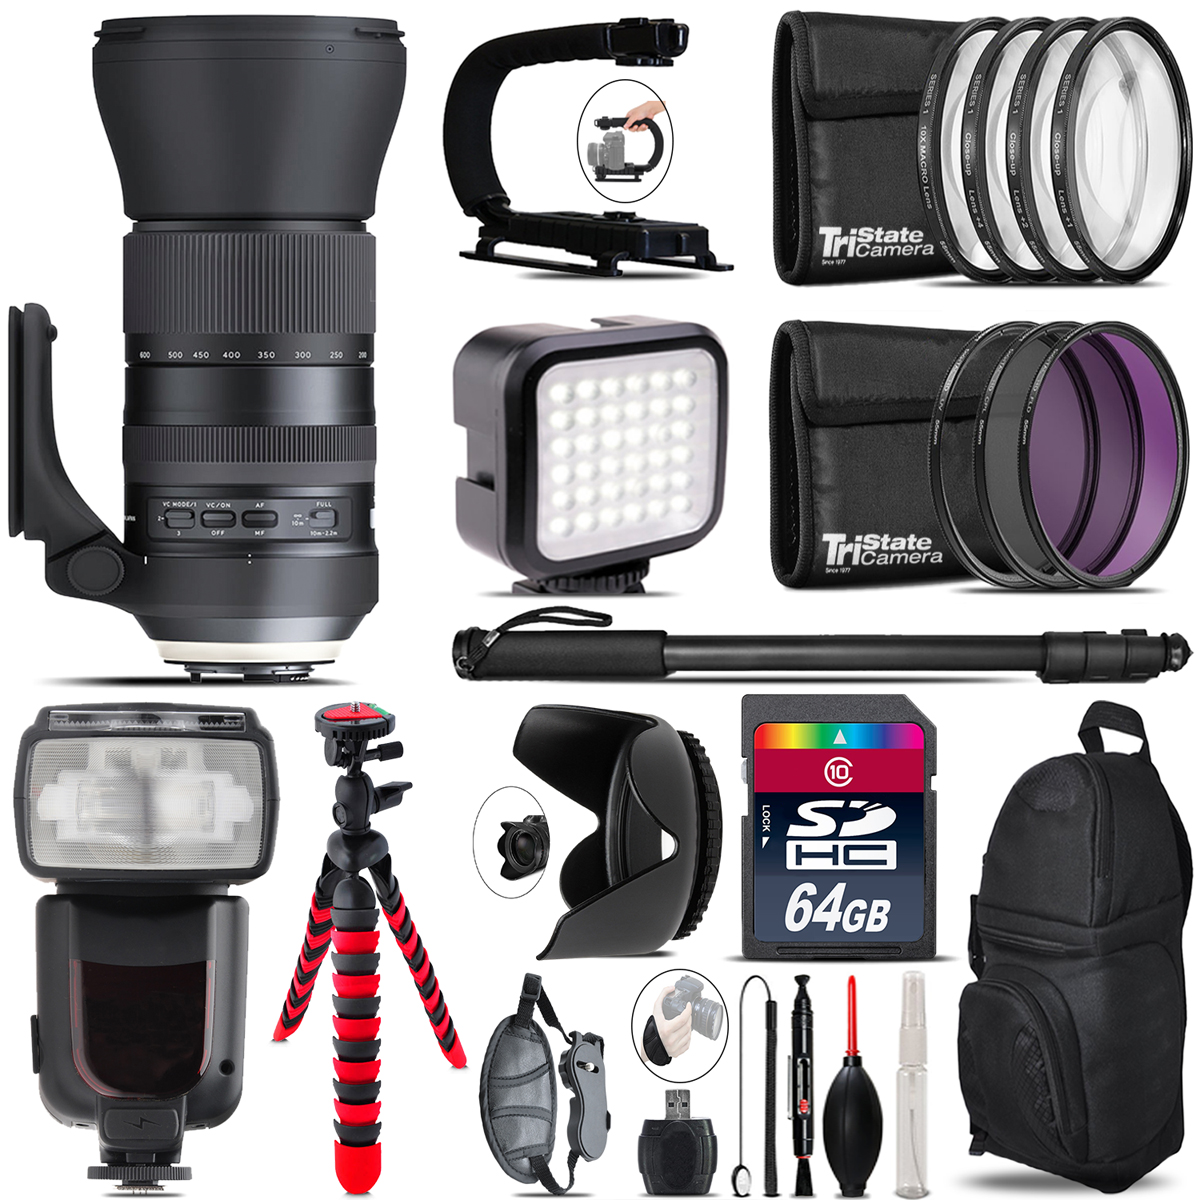 Tamron 150-600mm G2 for Nikon - Video Kit + Pro Flash - 64GB Accessory Bundle *FREE SHIPPING*